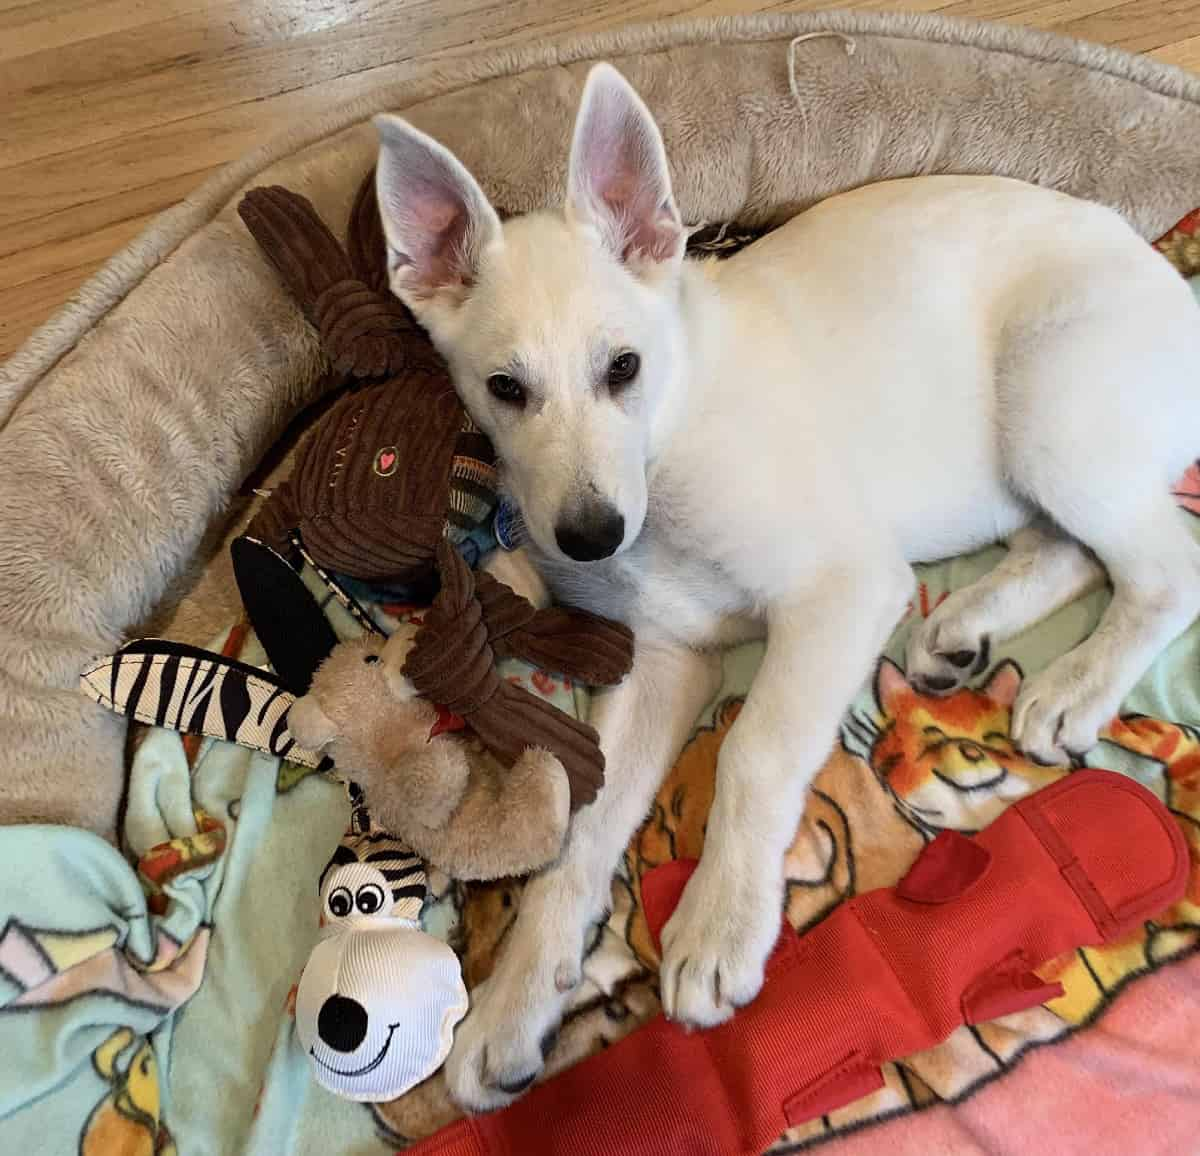 A young puppy in a dog be with toys